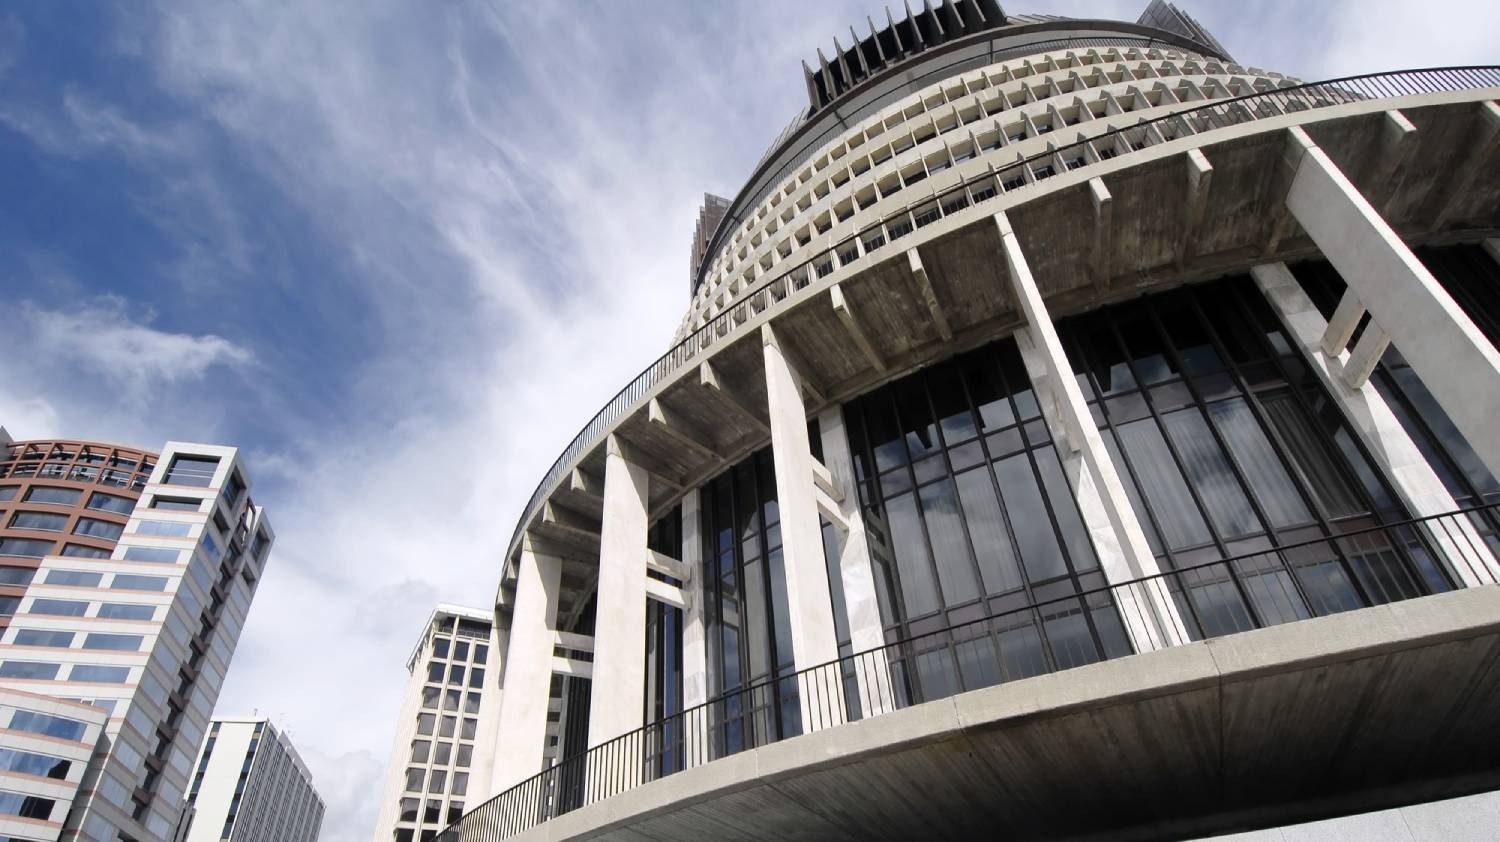 New Zealand's Parliament (Beehive) - Things To Do In Wellington